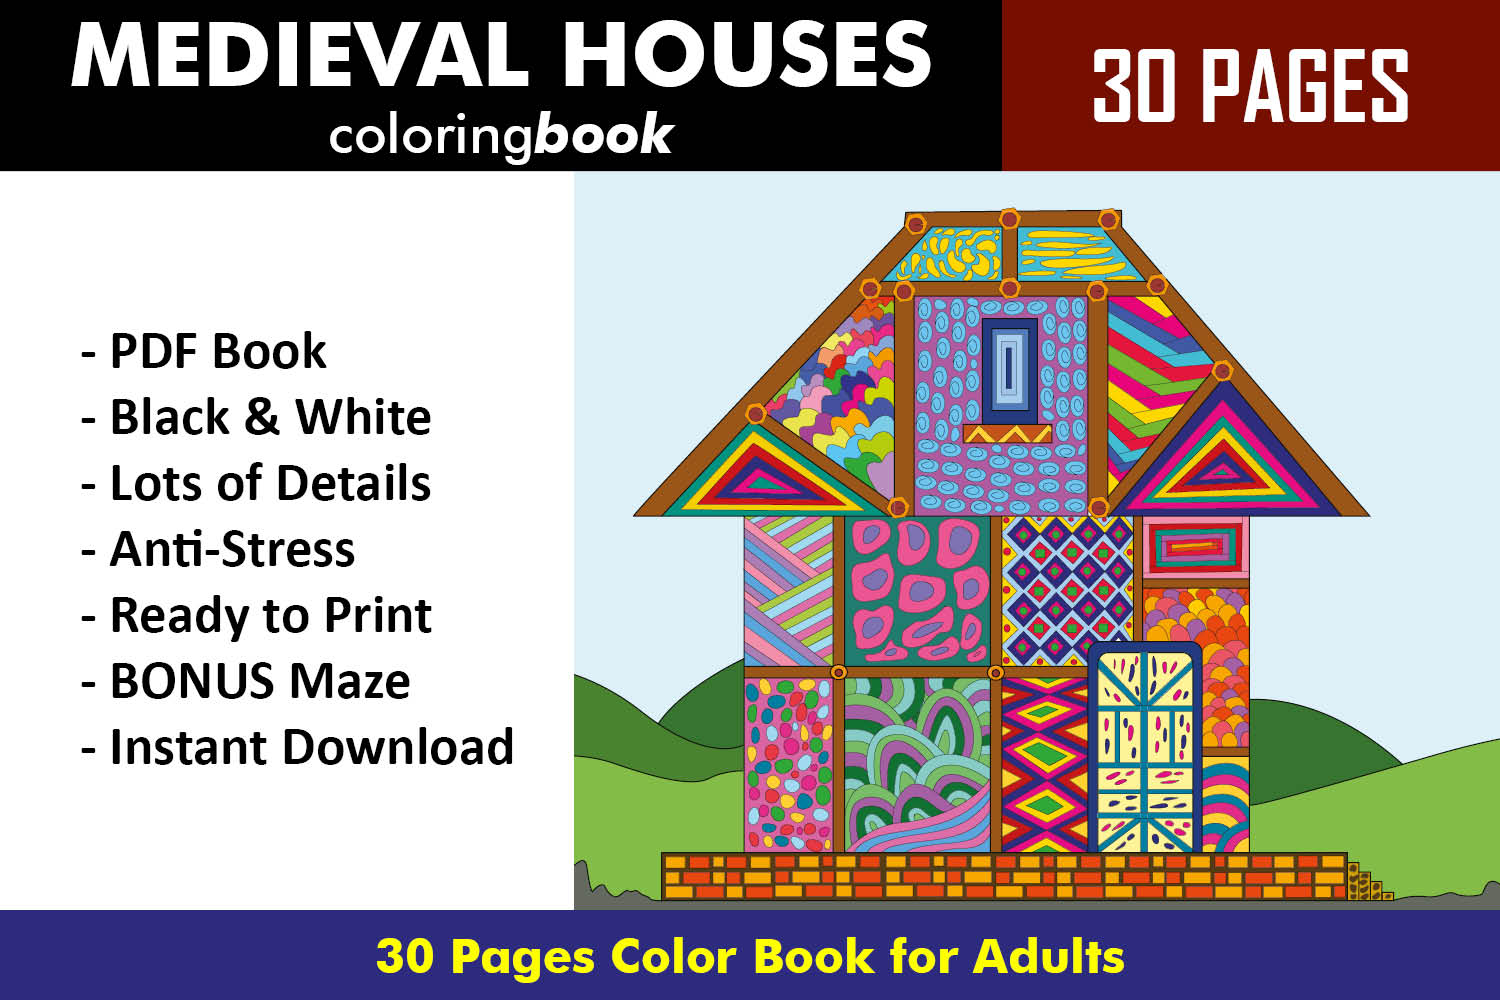 Medieval Houses Coloring Book - 30 Unique Coloring Pages example image 1